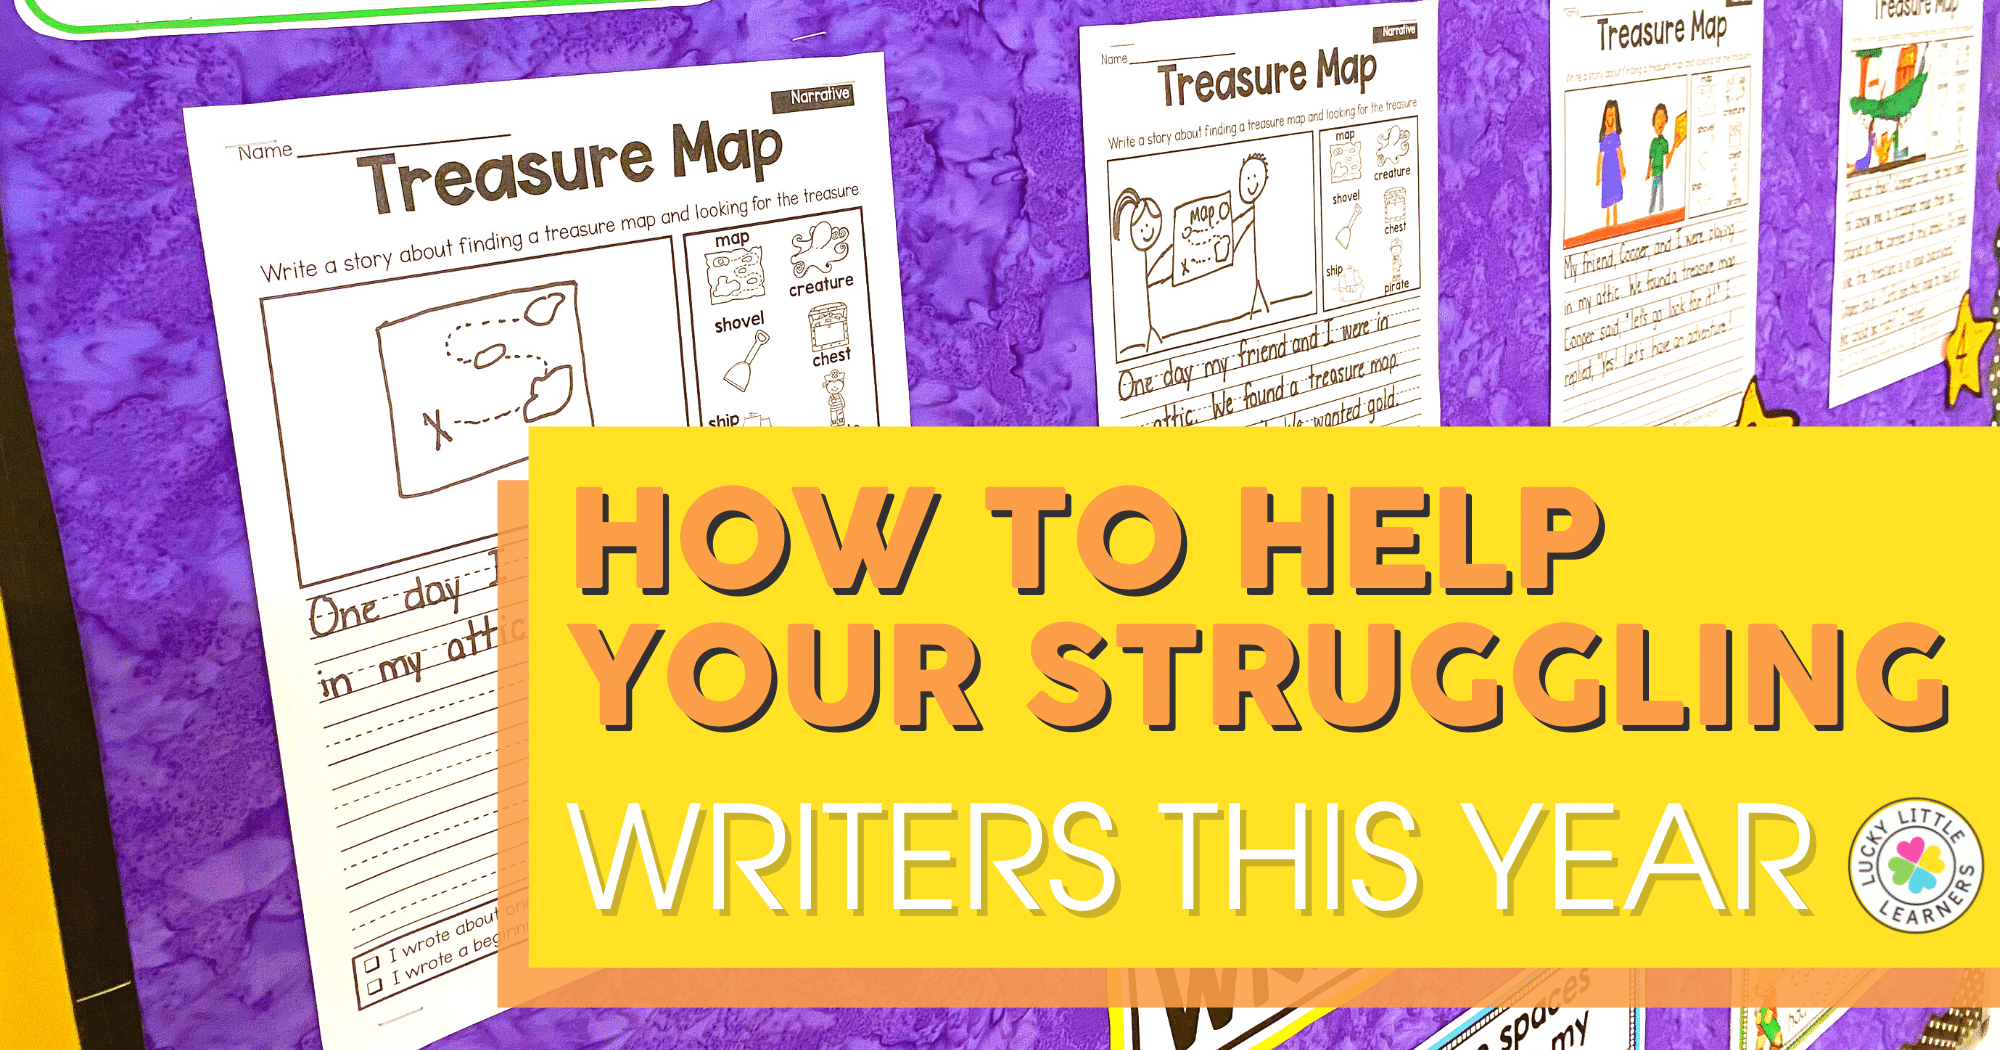 How to Help Your Struggling Writers This Year